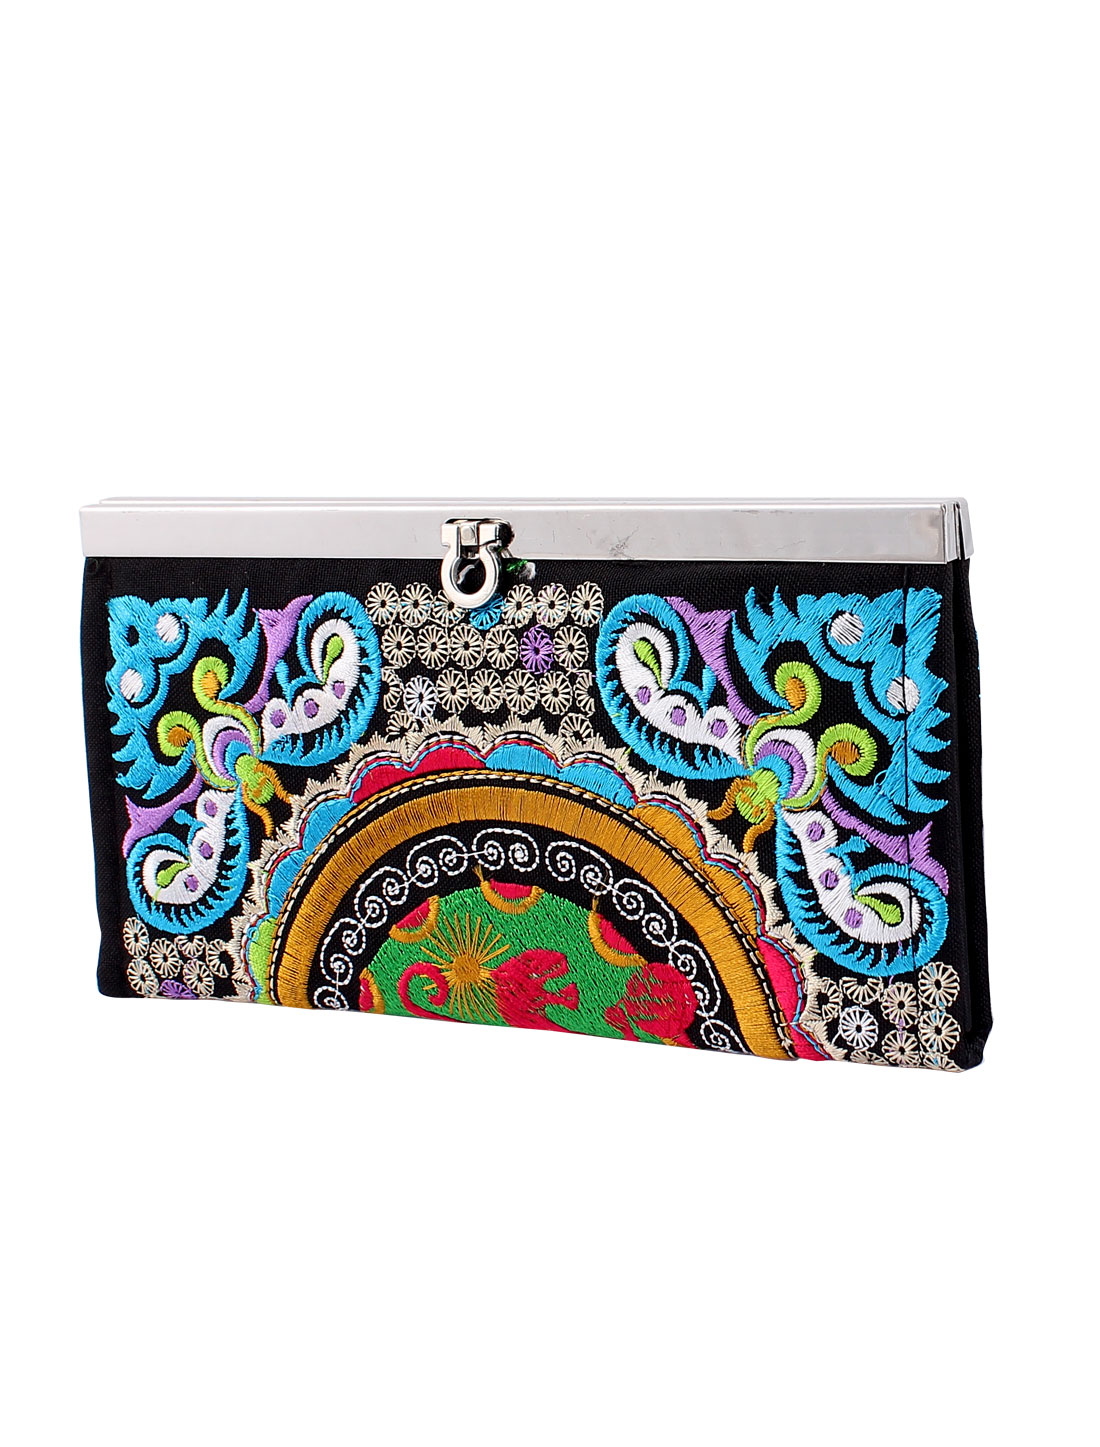 Women Embroider Floral Flip Lock Open Purse Wallet Clutch Handbag